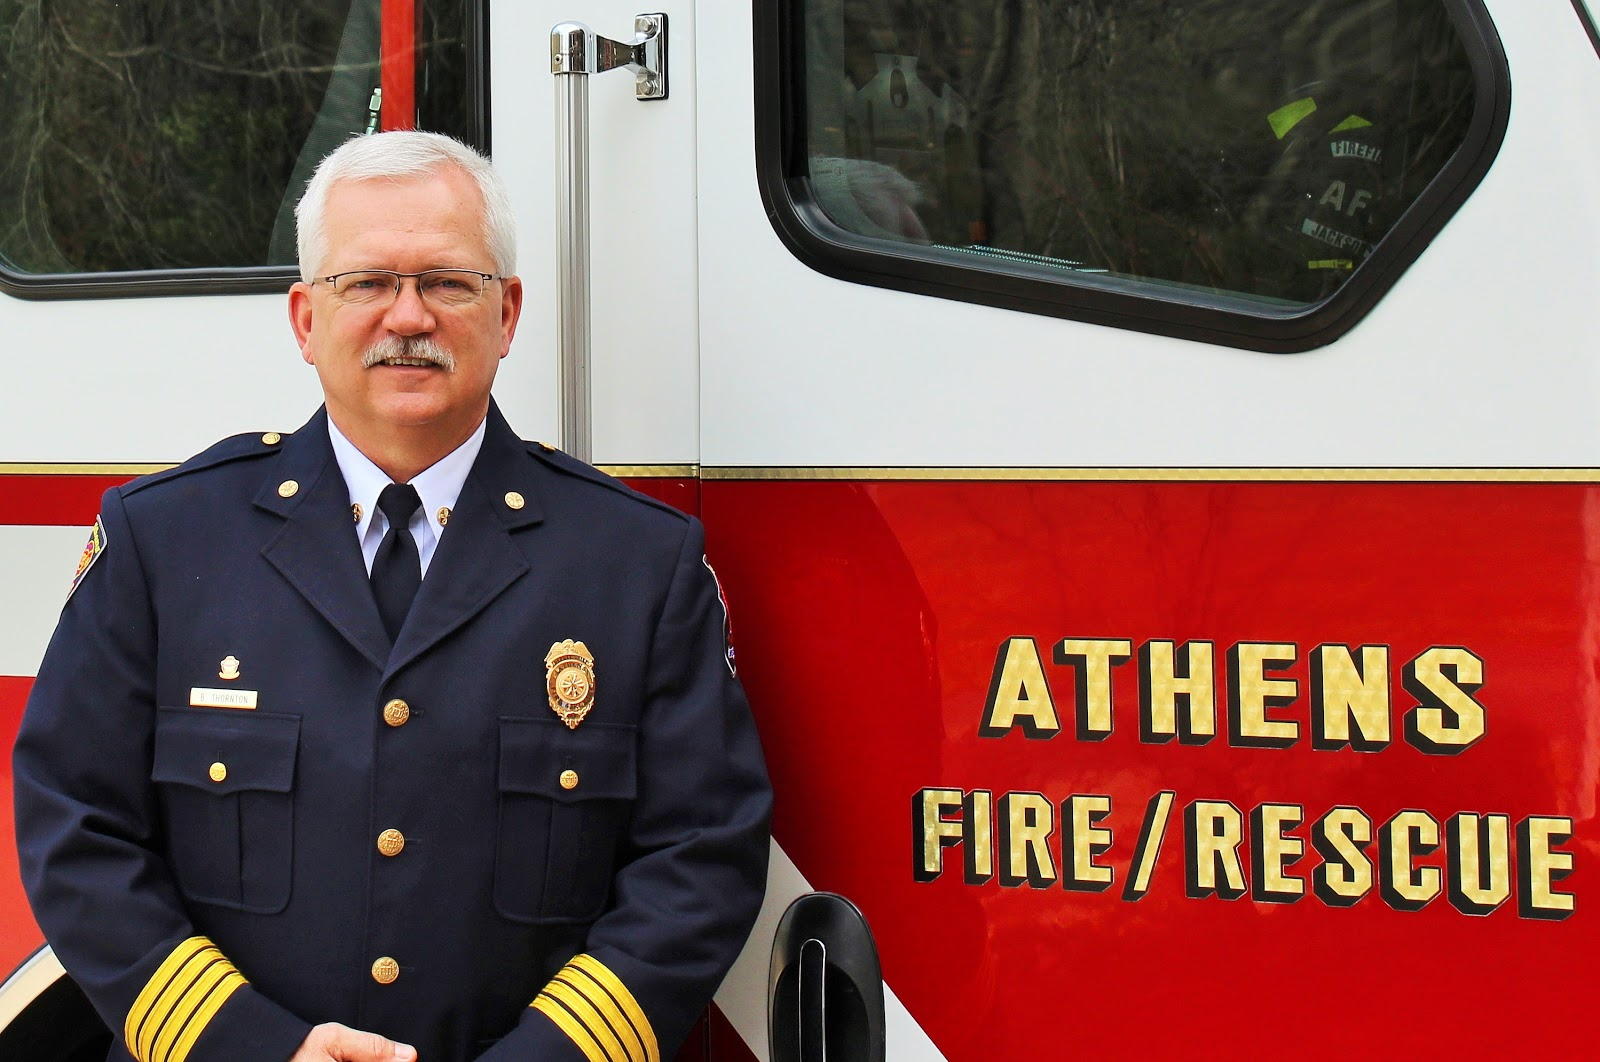 Fire Chief beside fire truck